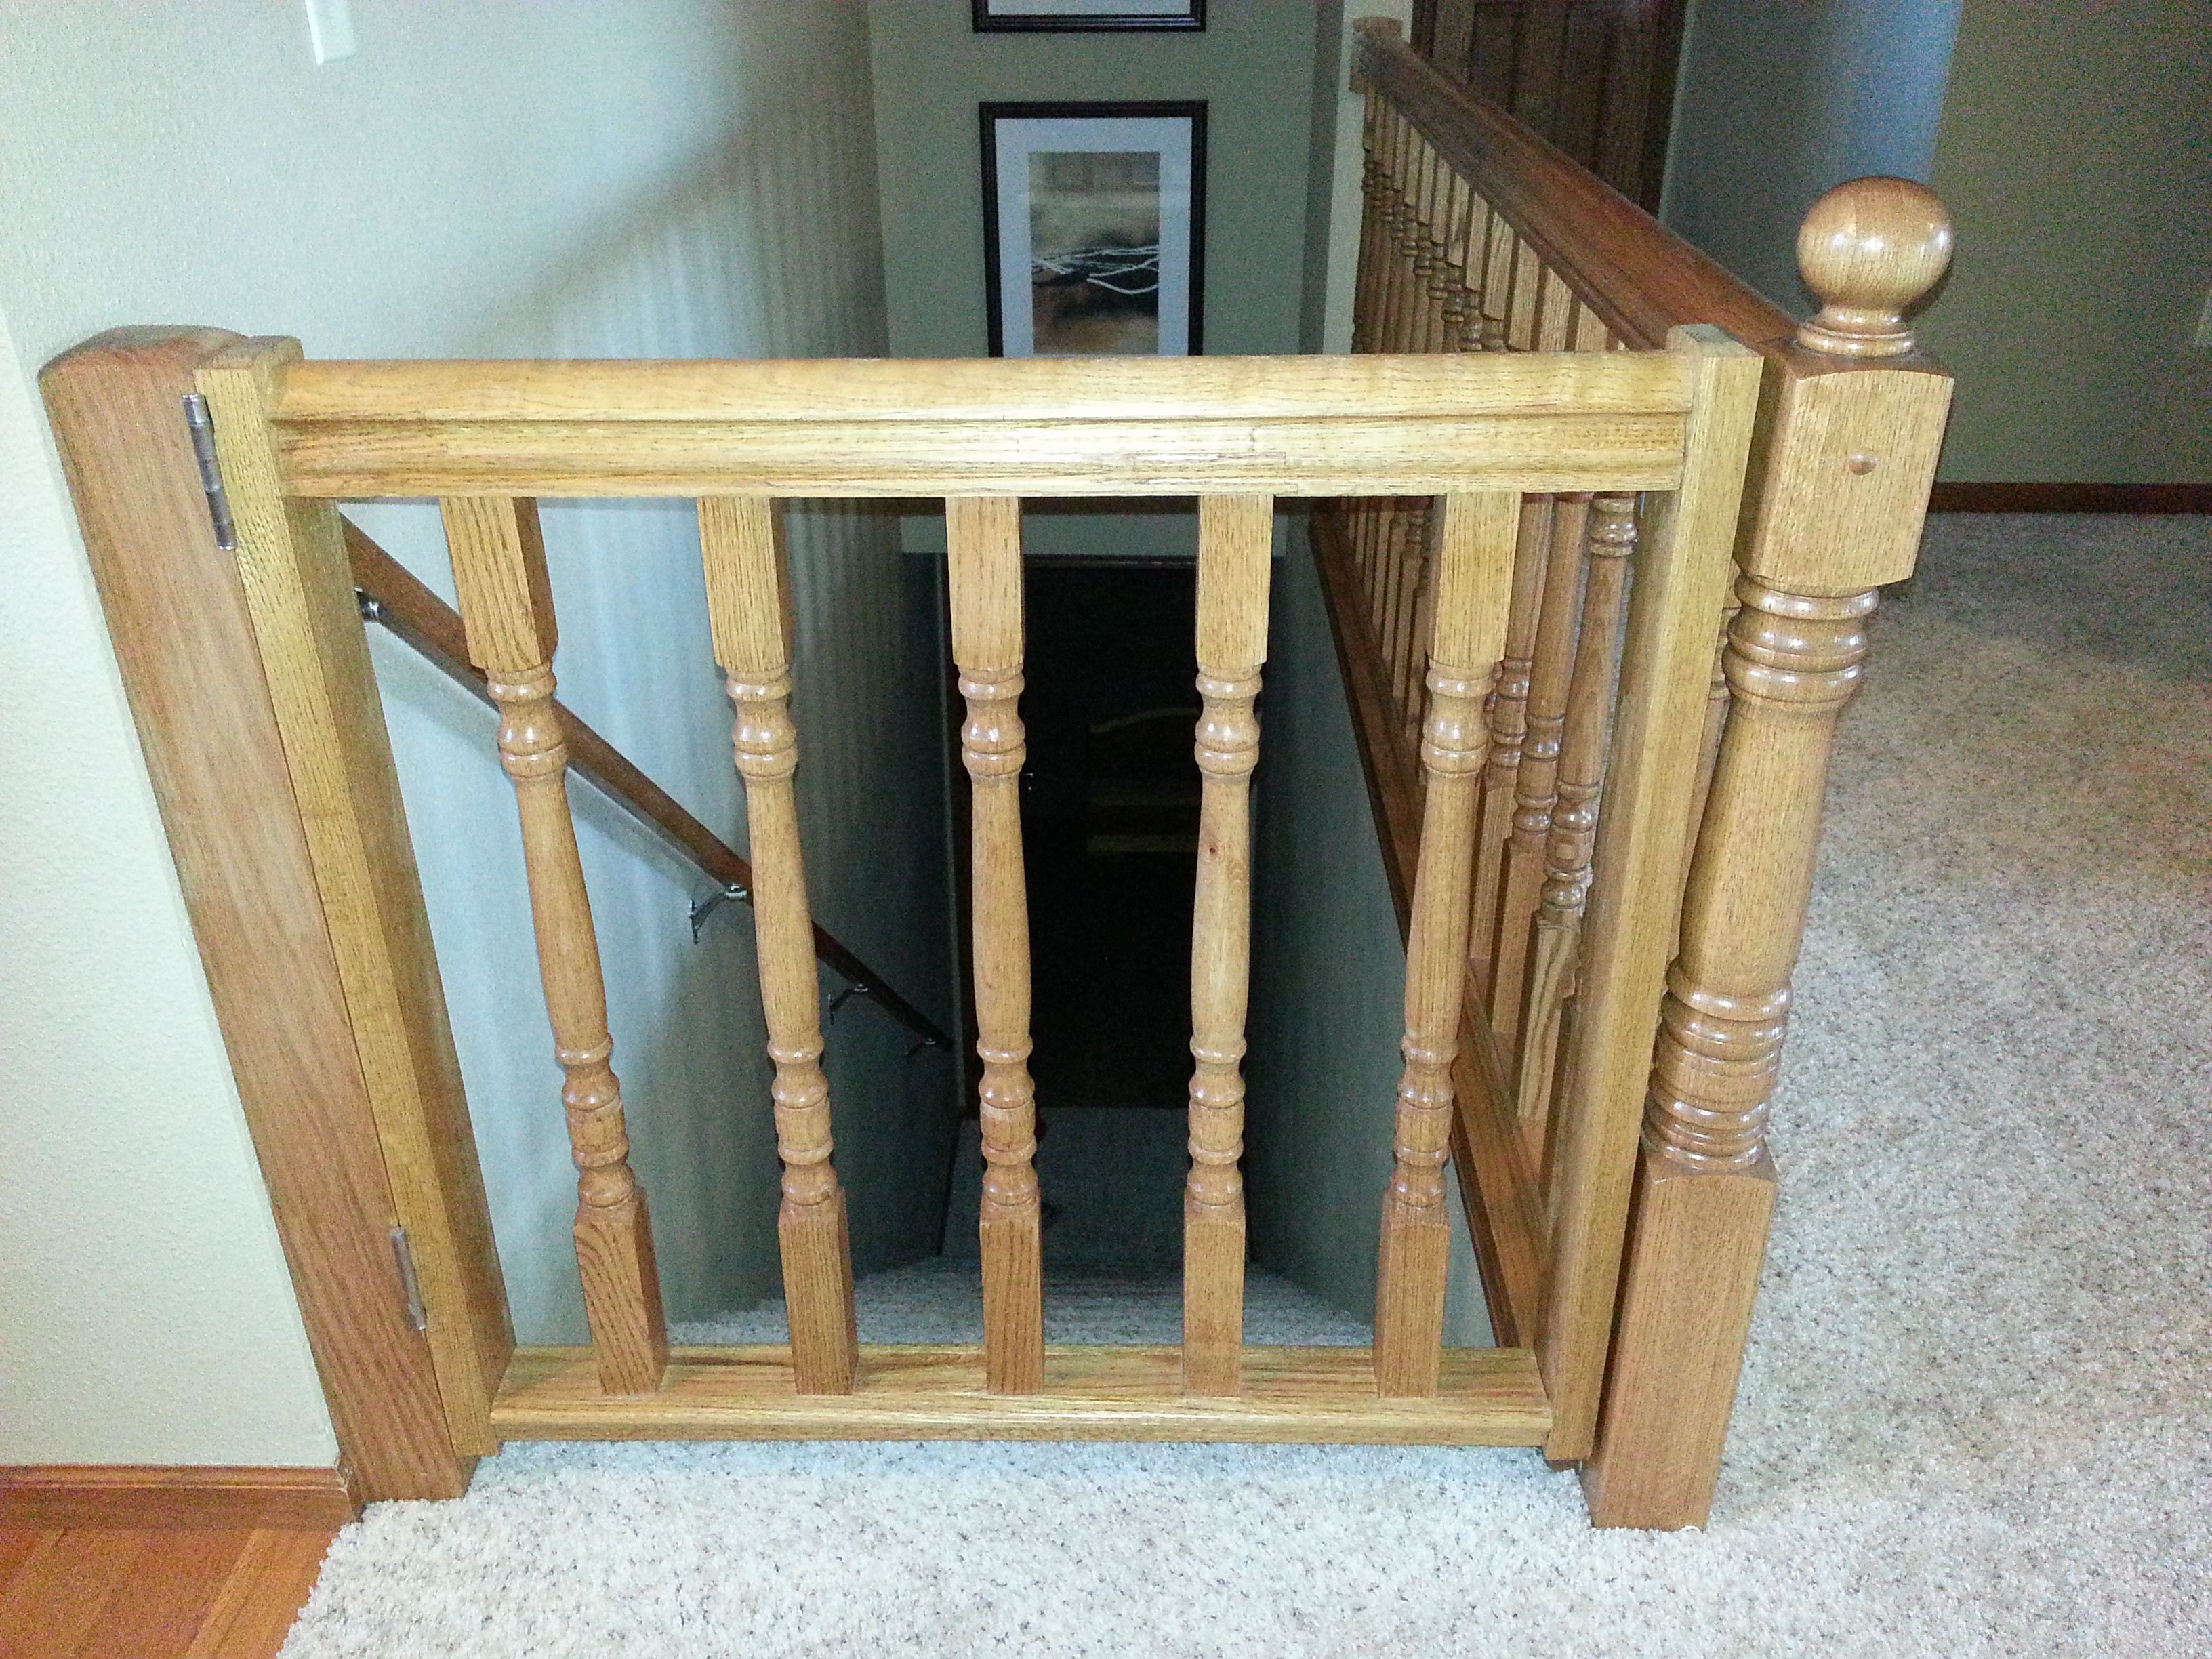 My hubby and I made this gate out of extra spindles and